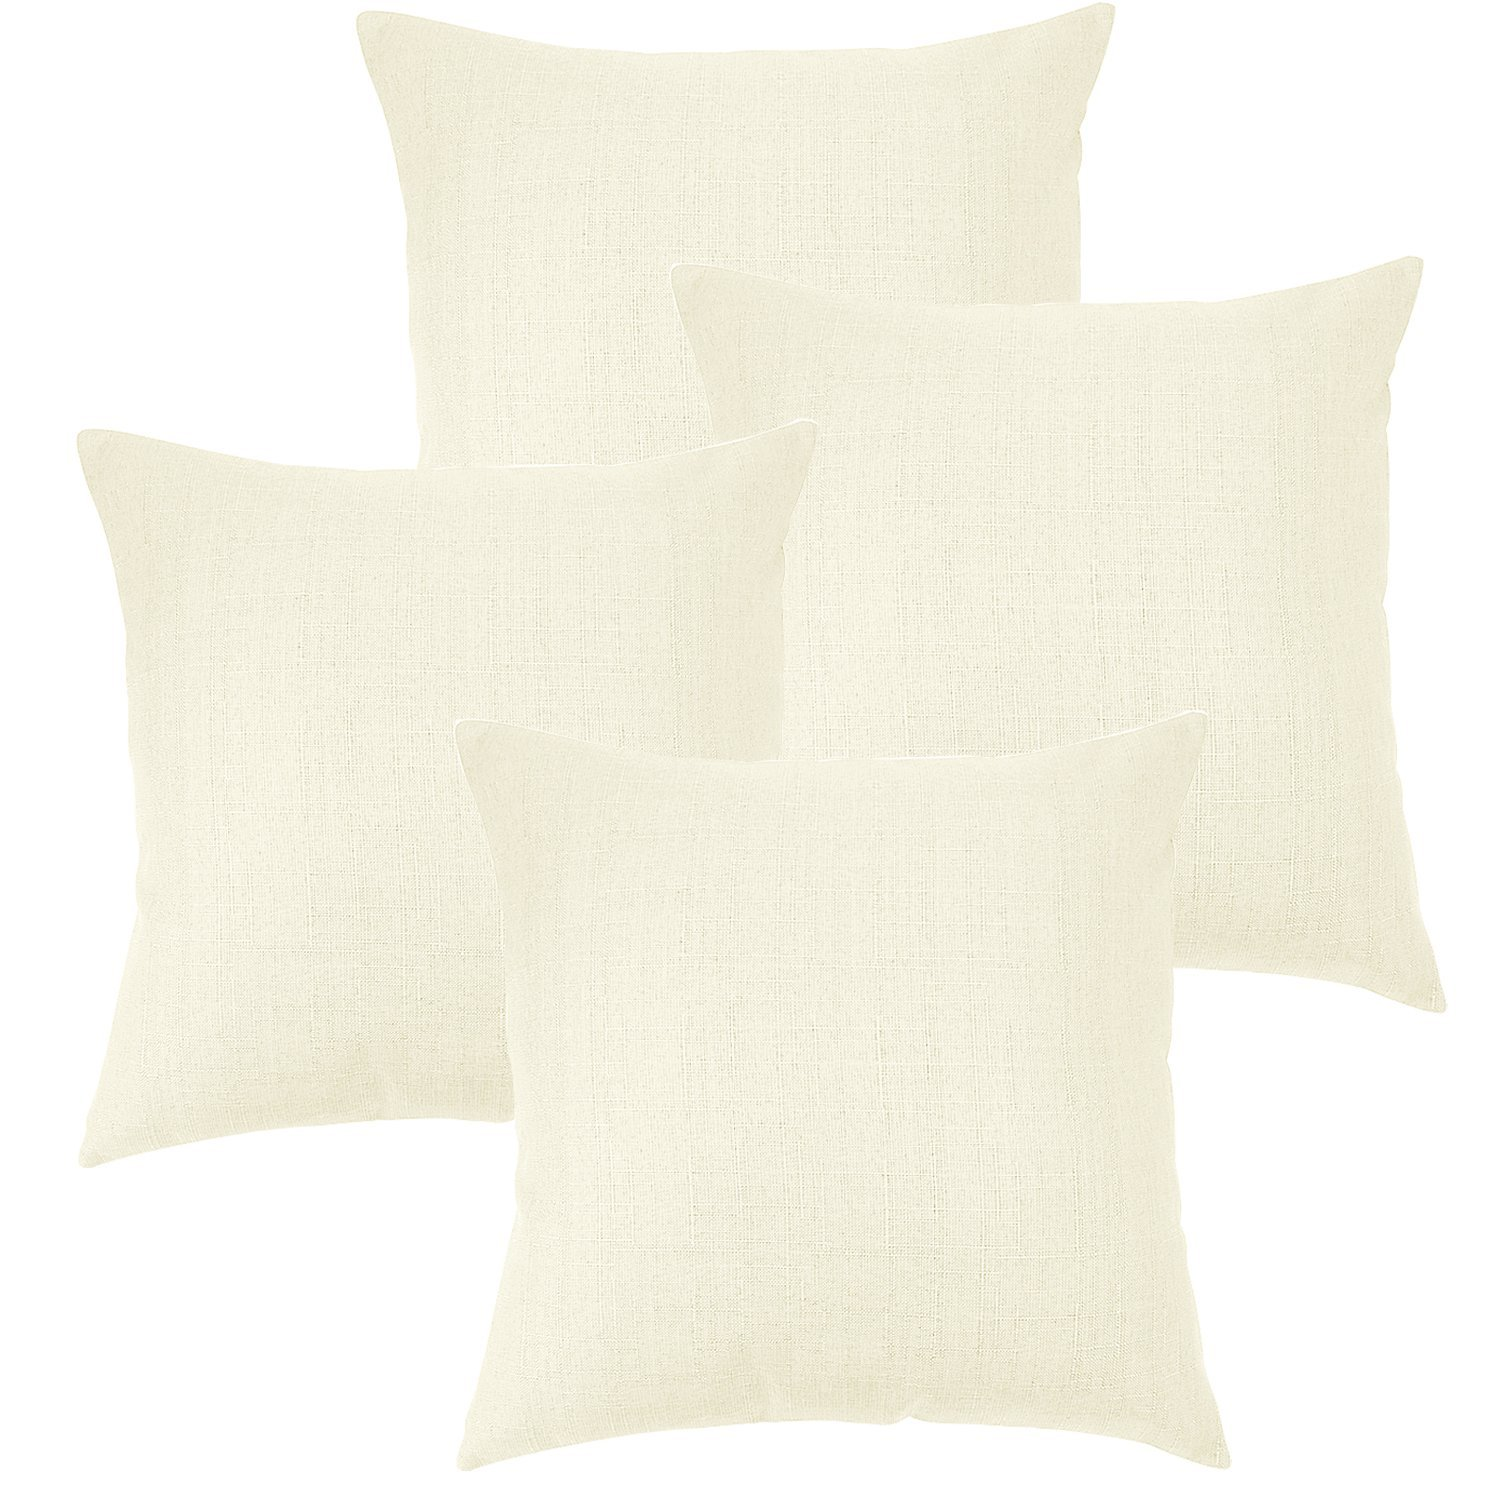 Linen Pillow Covers 20 x 20 Inch Sets of 4 Decorative Square Throw Pillow Cover Cushion... by